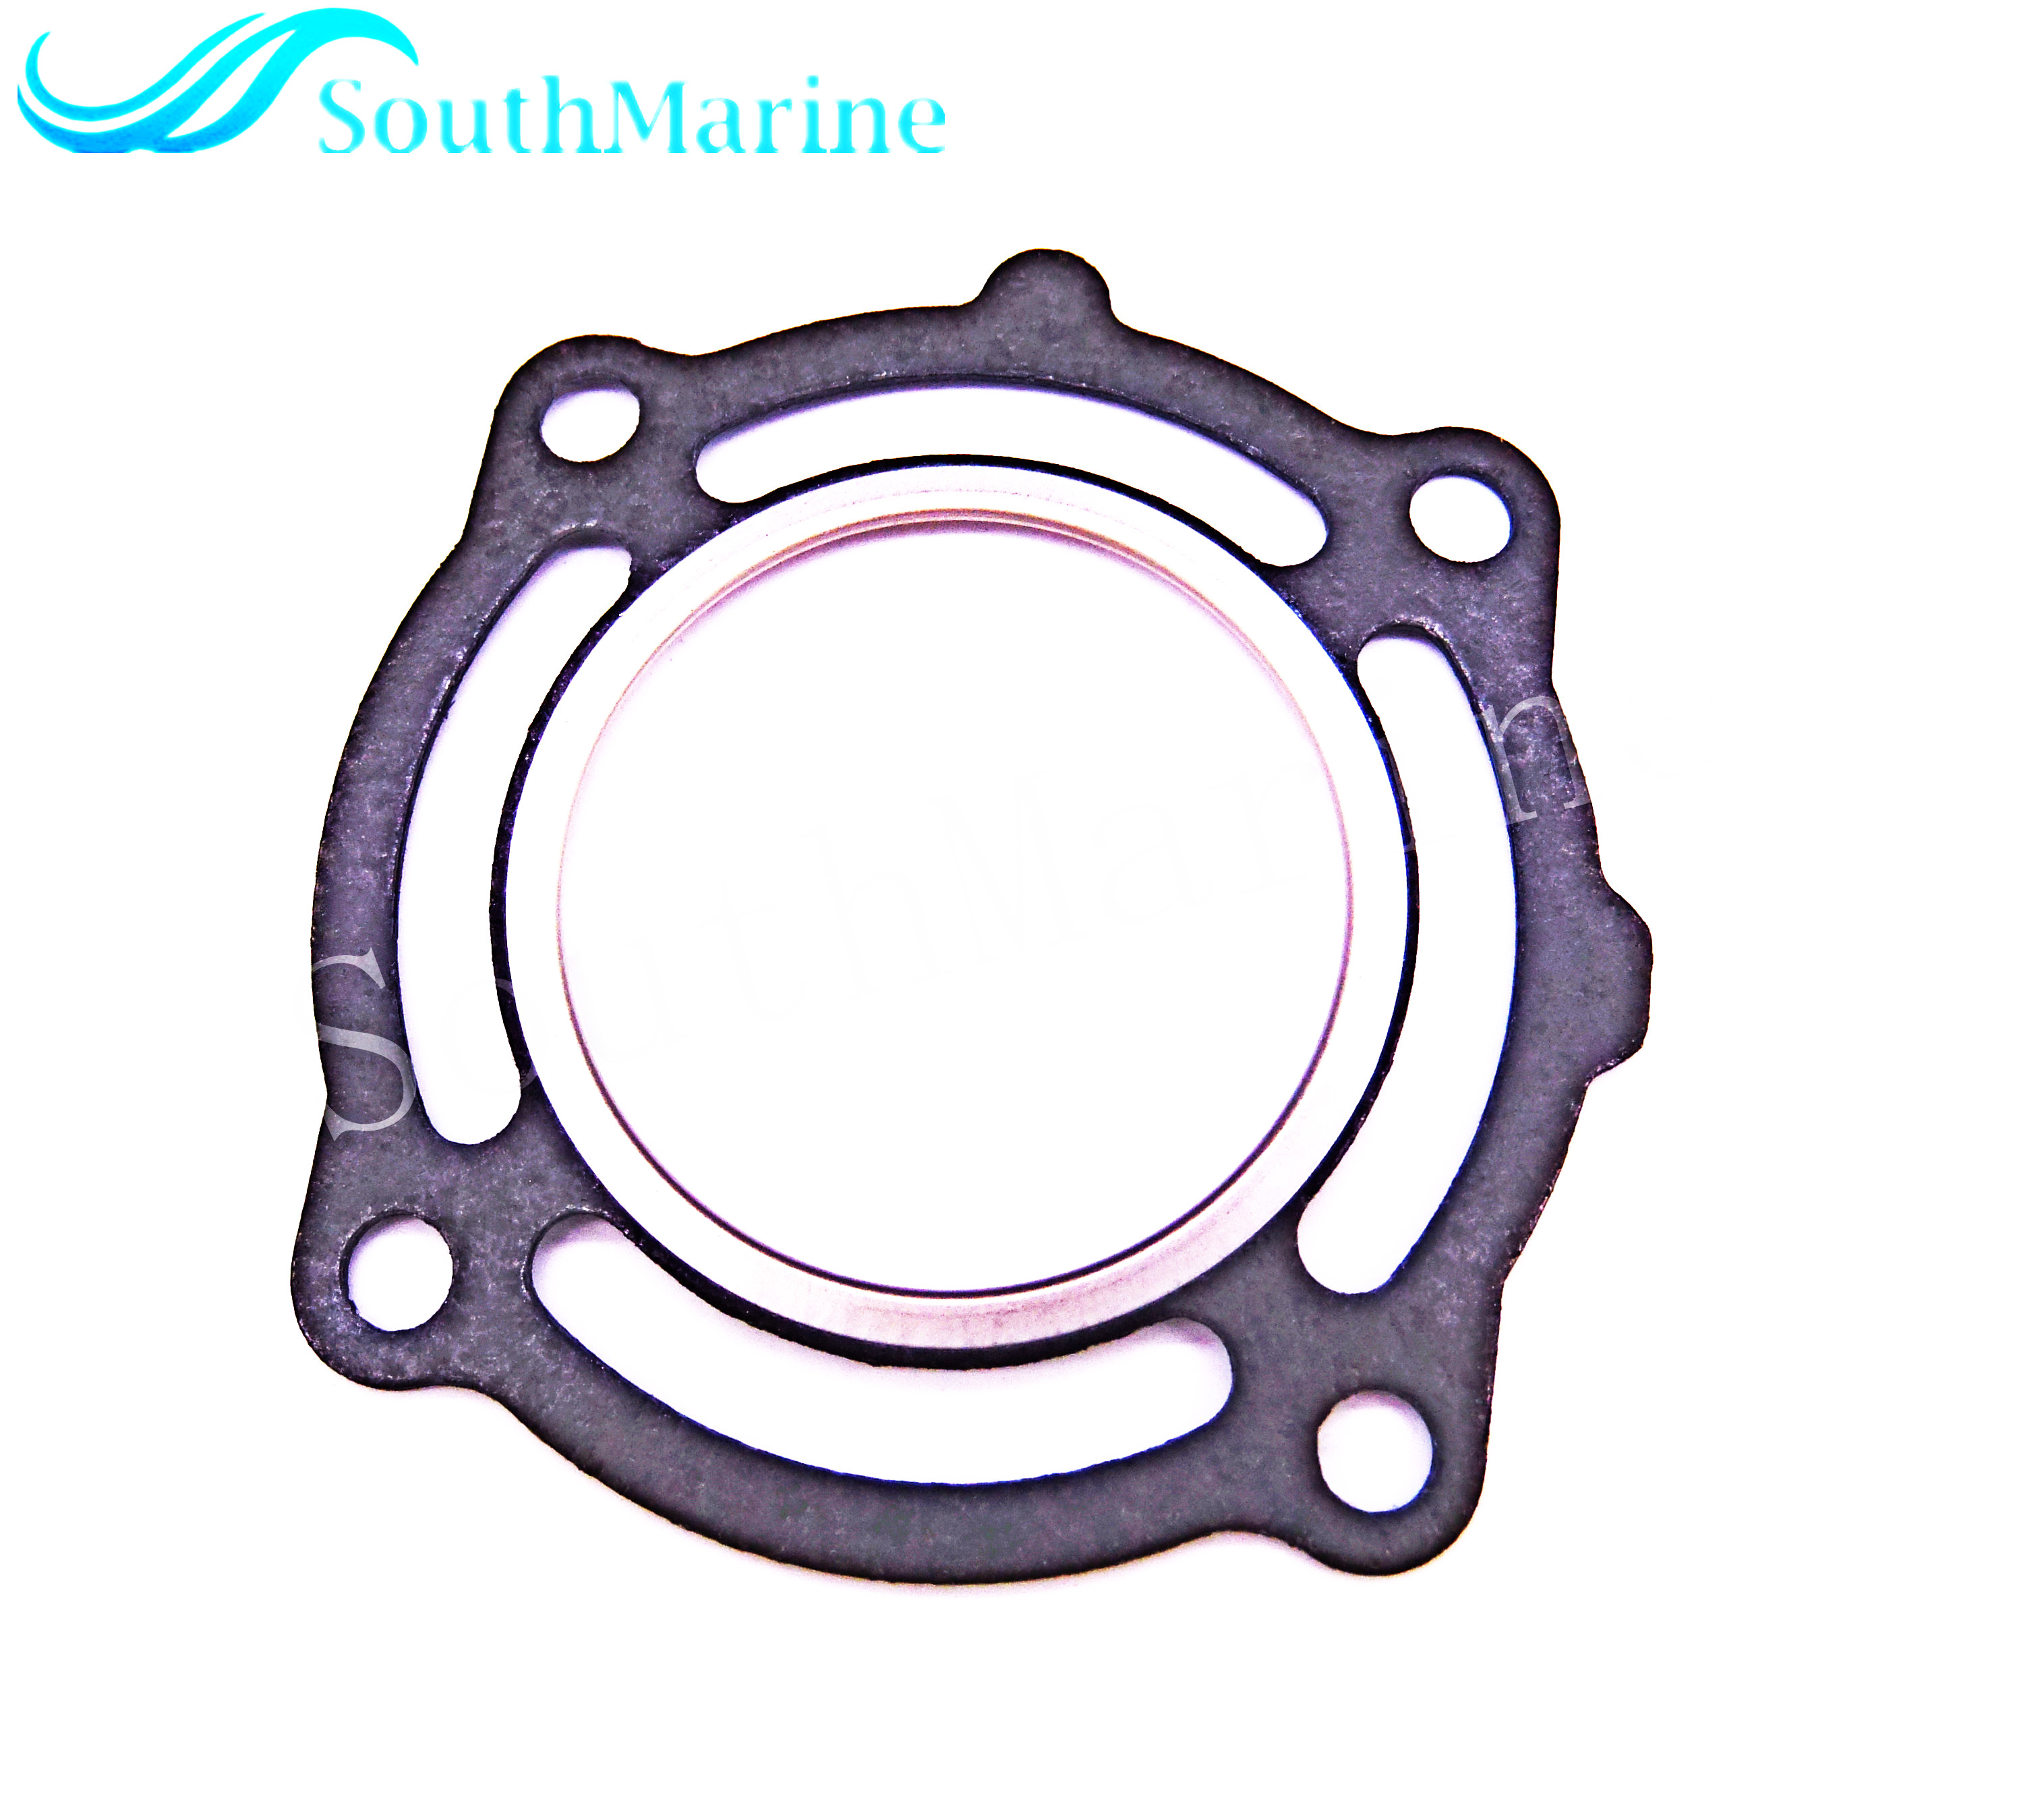 Outboard Engines 2.5F-01.01.00.08 Boat Motors Cylinder Head Gasket for Hidea 2.5F 2-Stroke